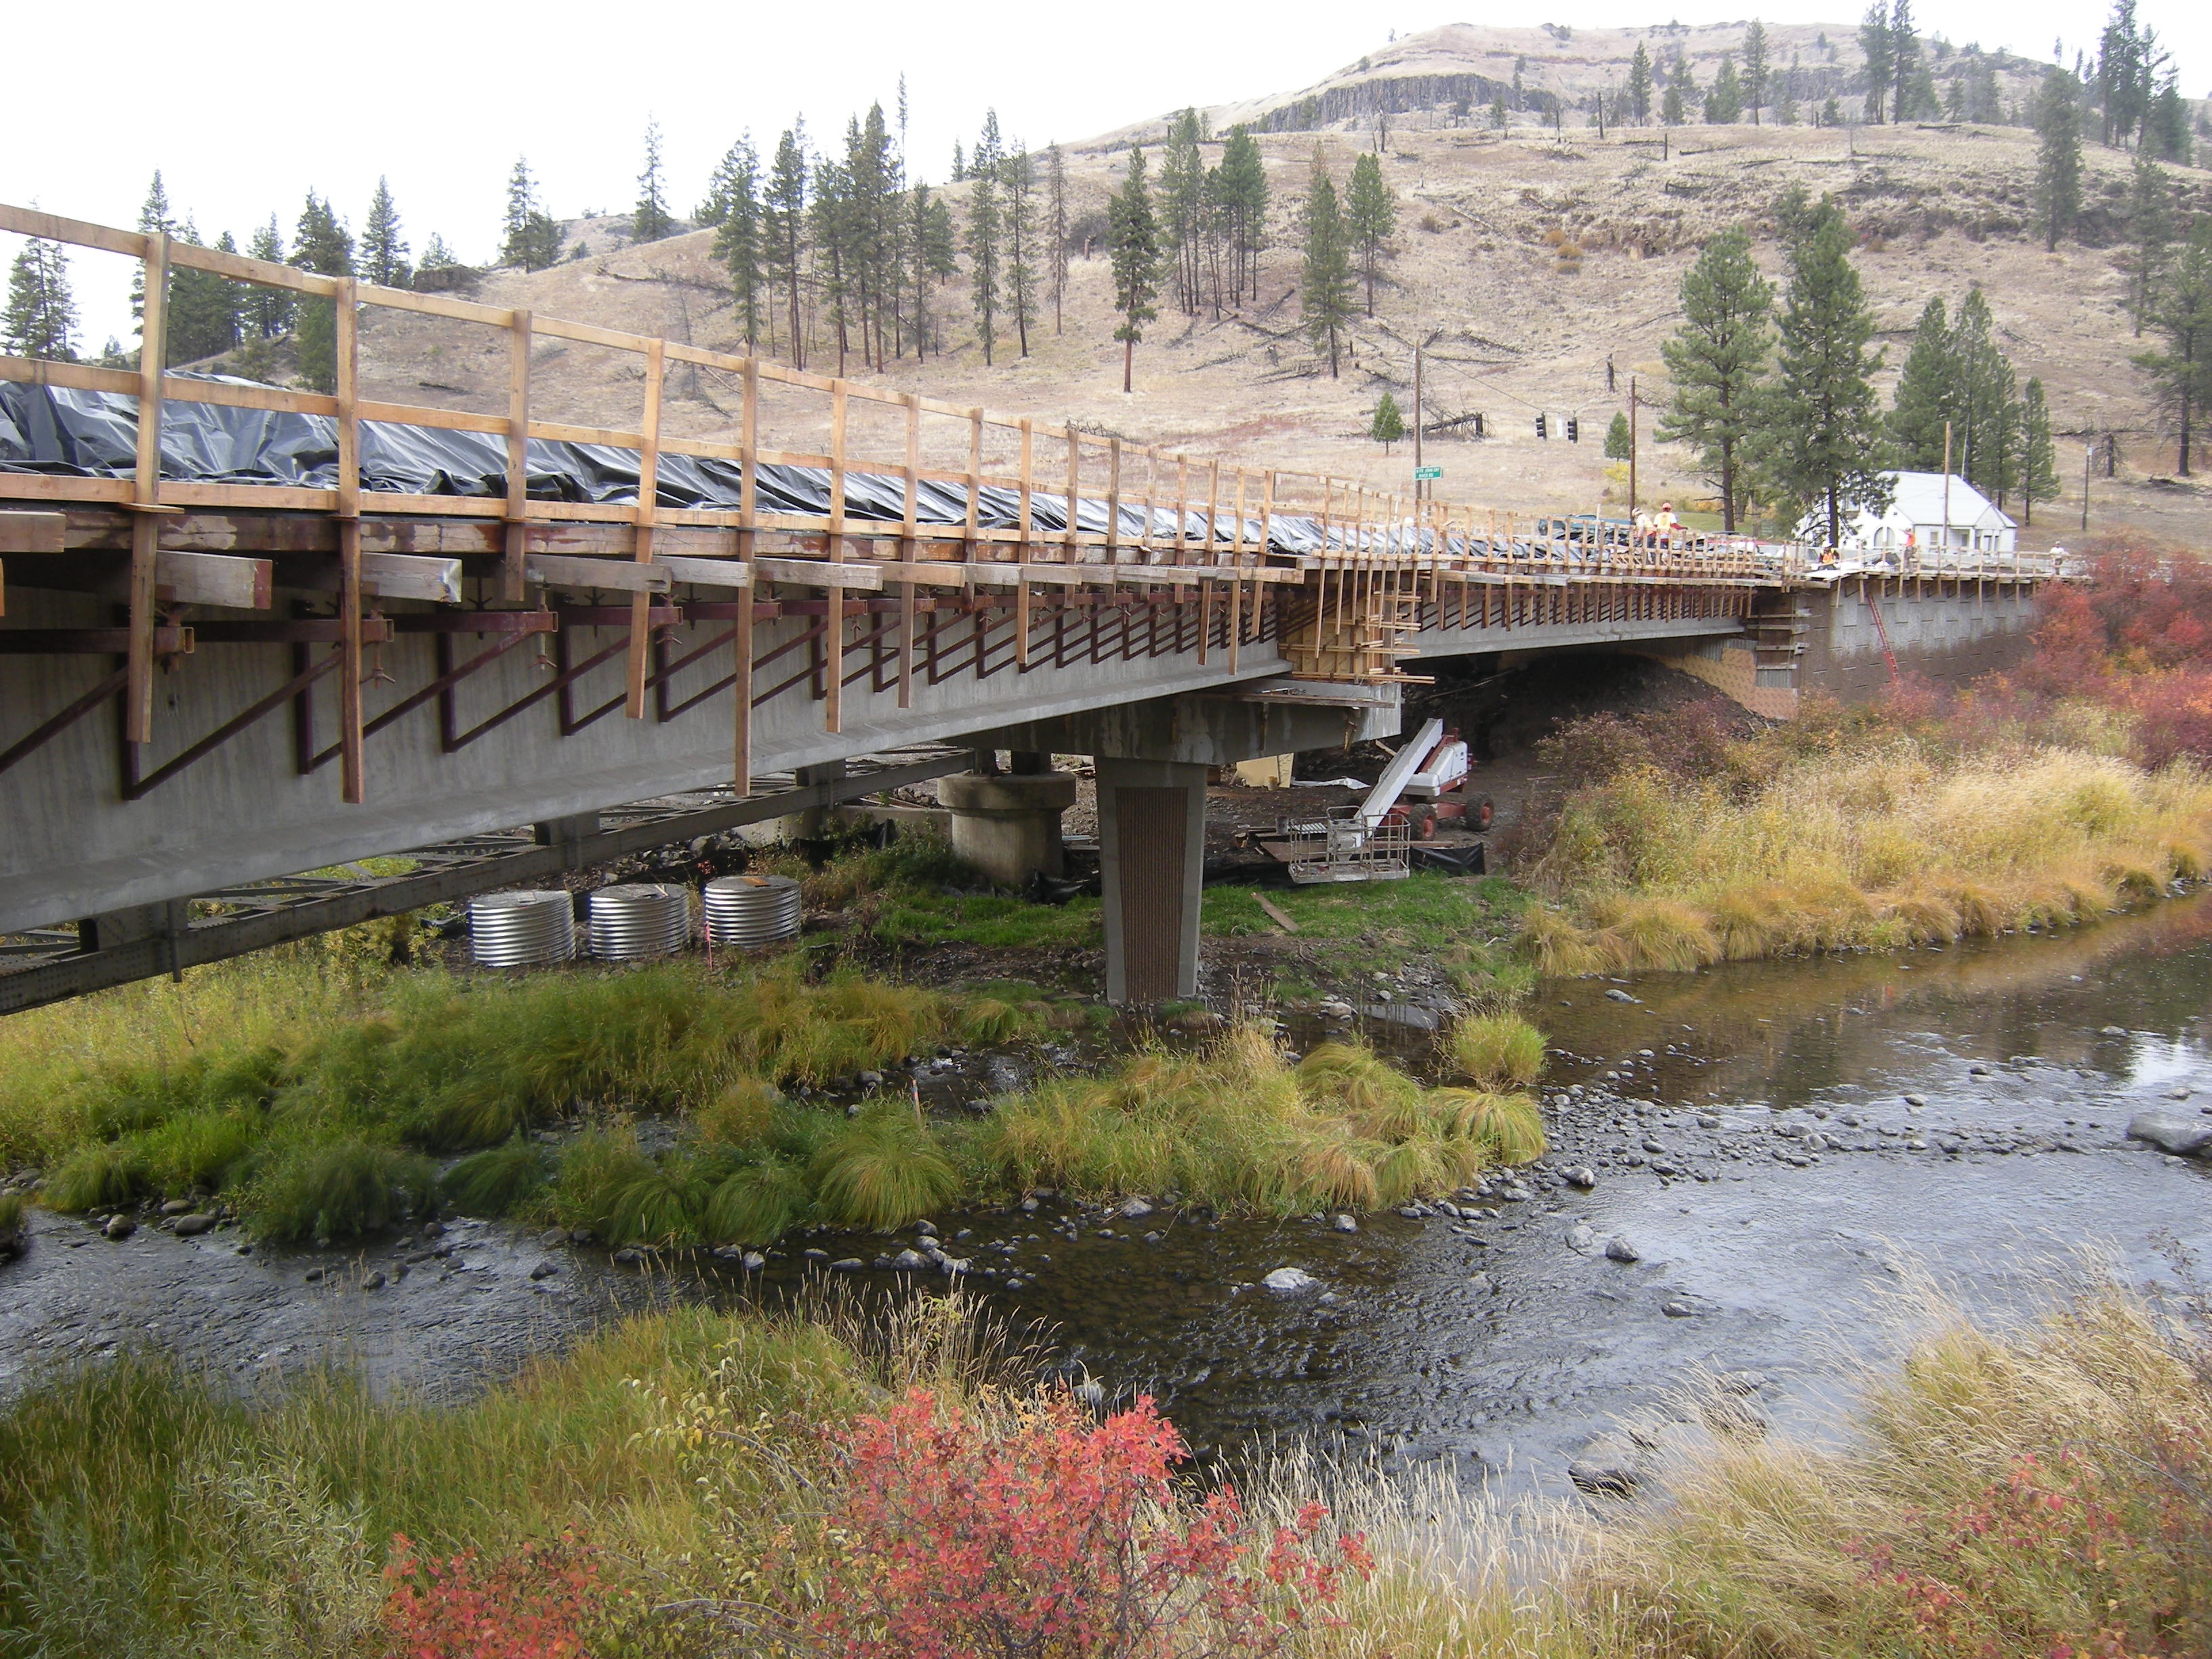 US 395: McKay Creek – Silvies Slough (Bundle 414) Design Build Project